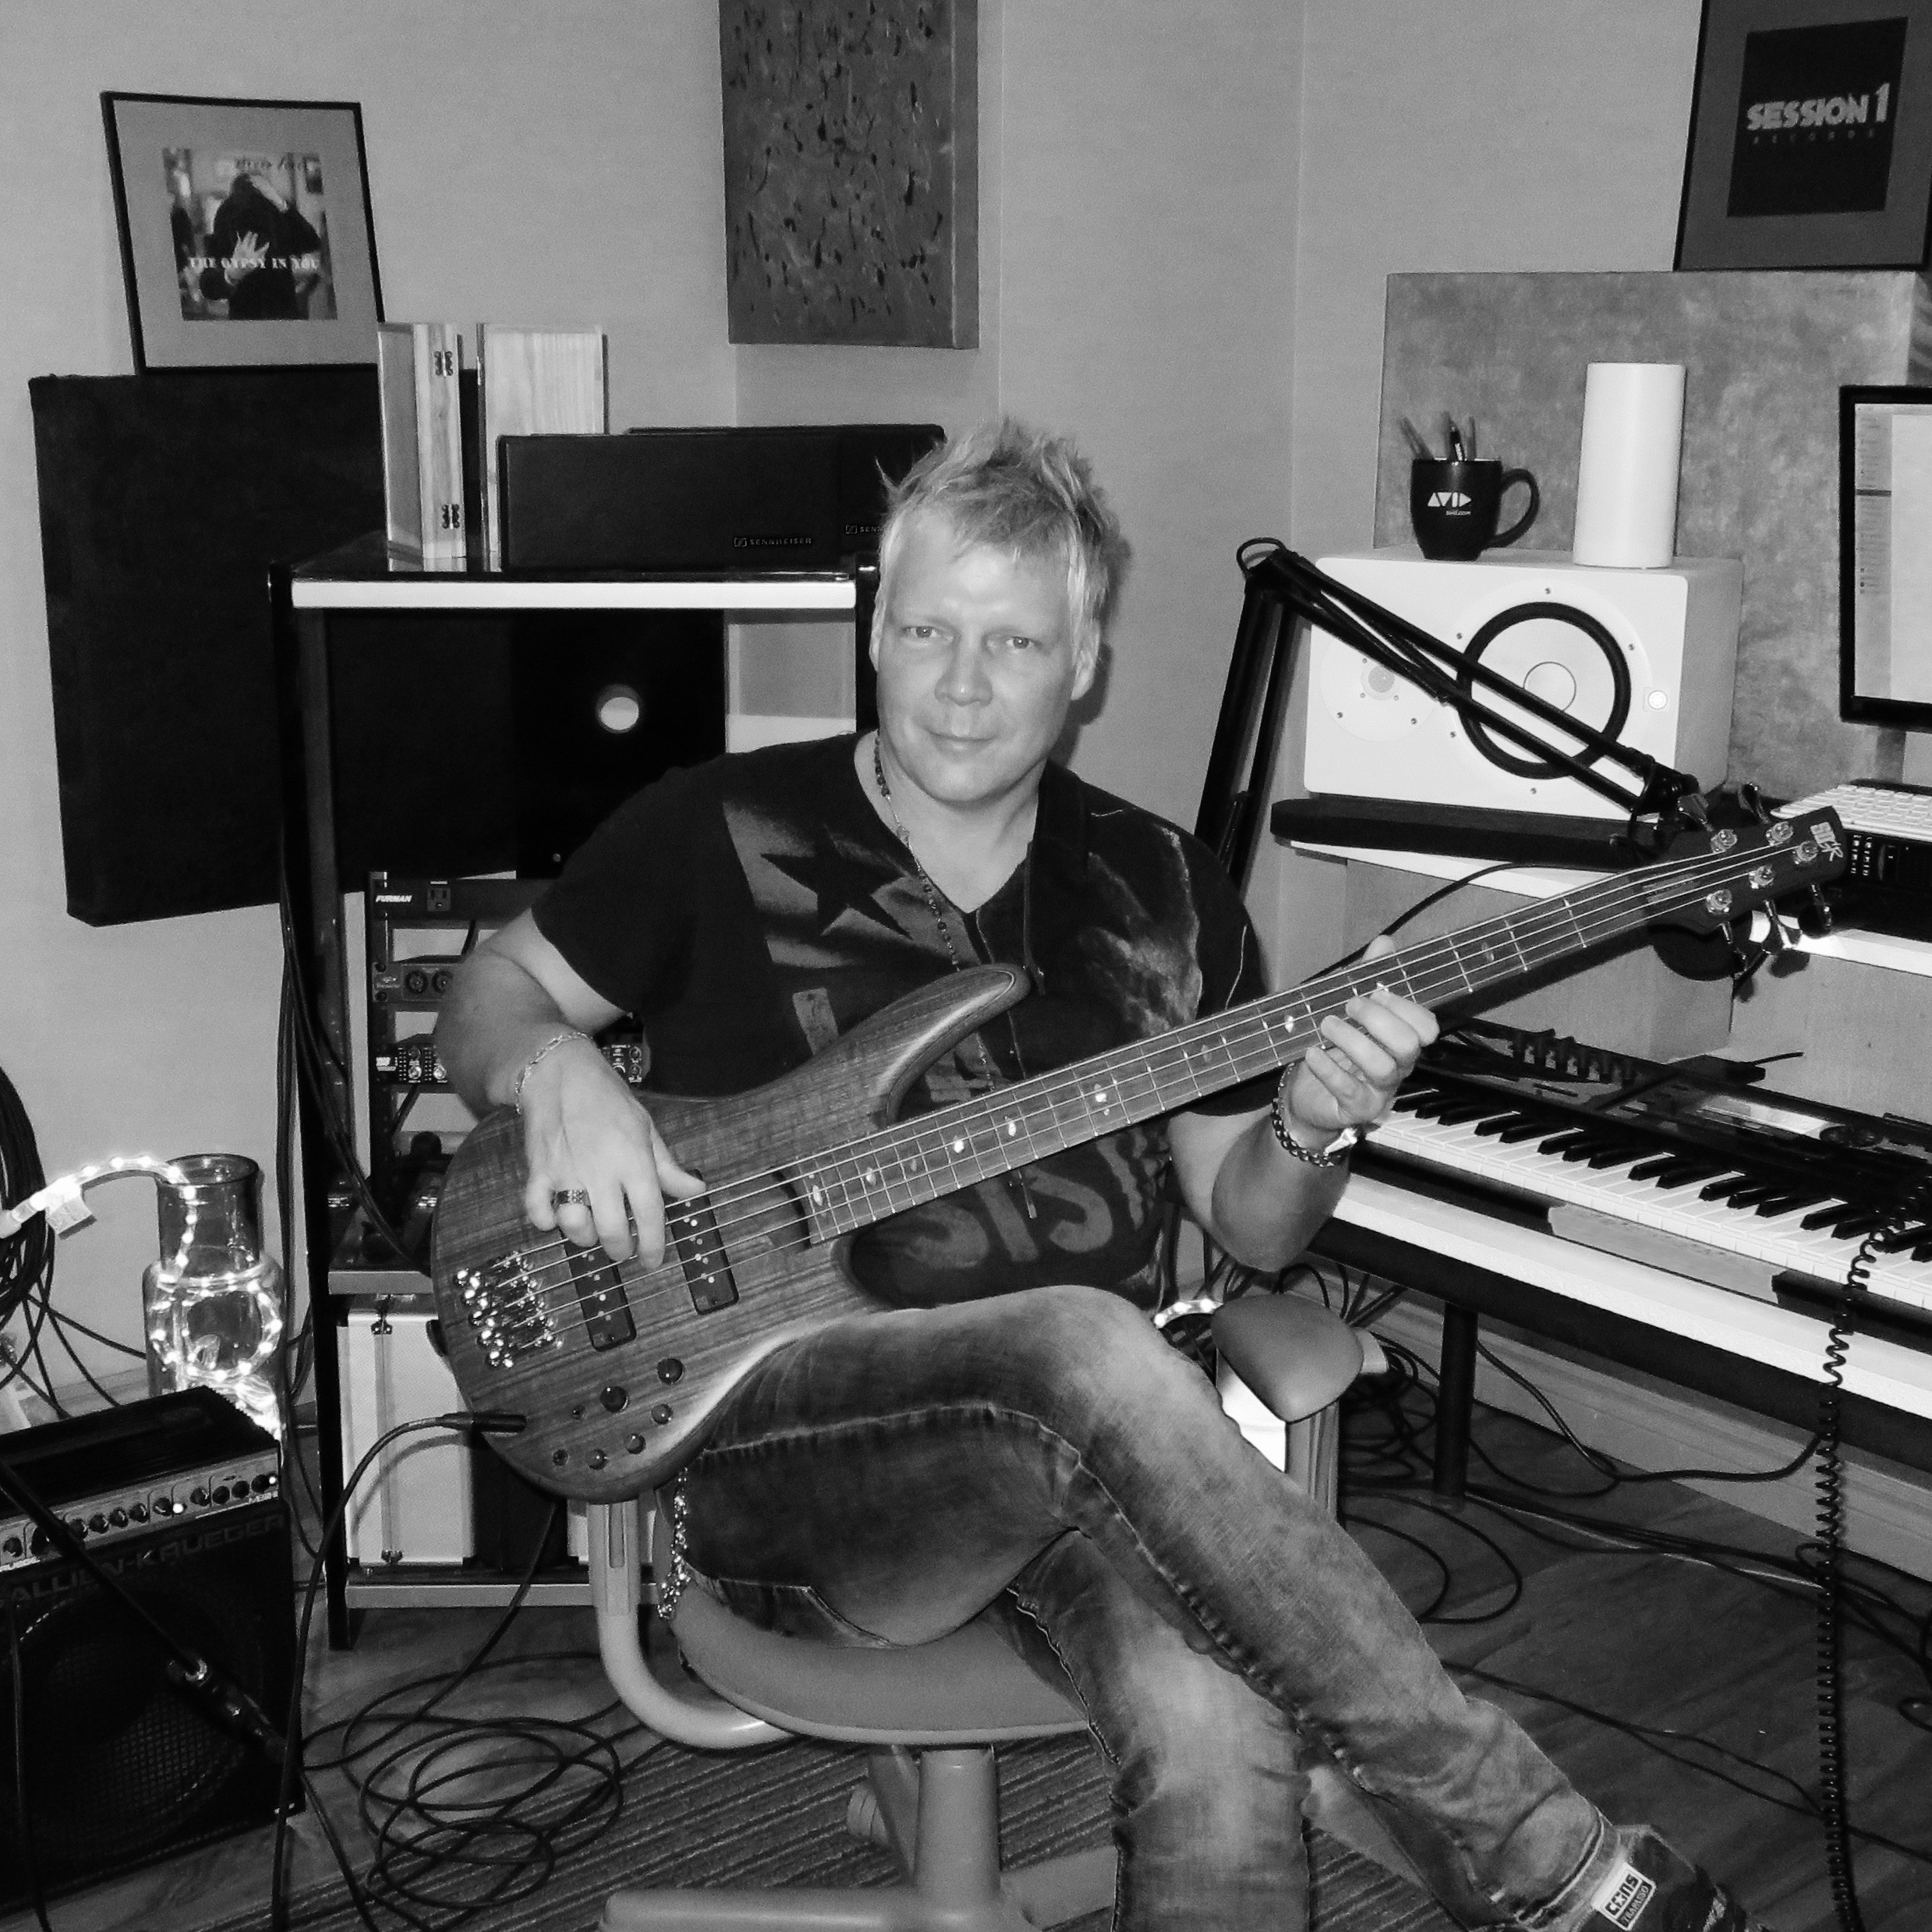 Steven_dueck_record_producer_session_bassist